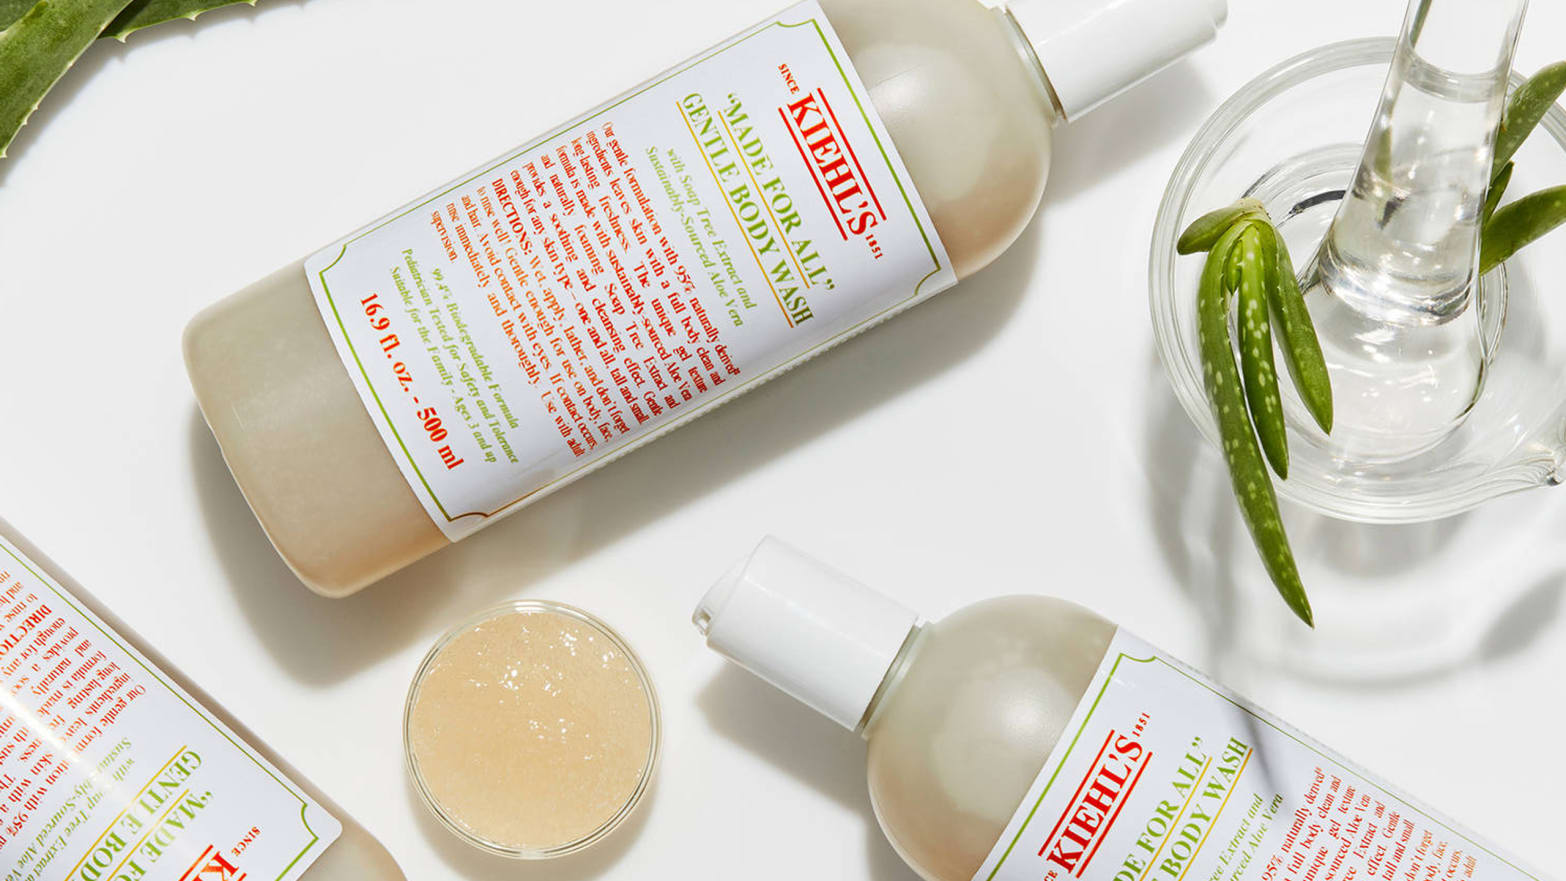 Afbeeldingsresultaat voor Made for All Gentle Body Wash van Kiehl's